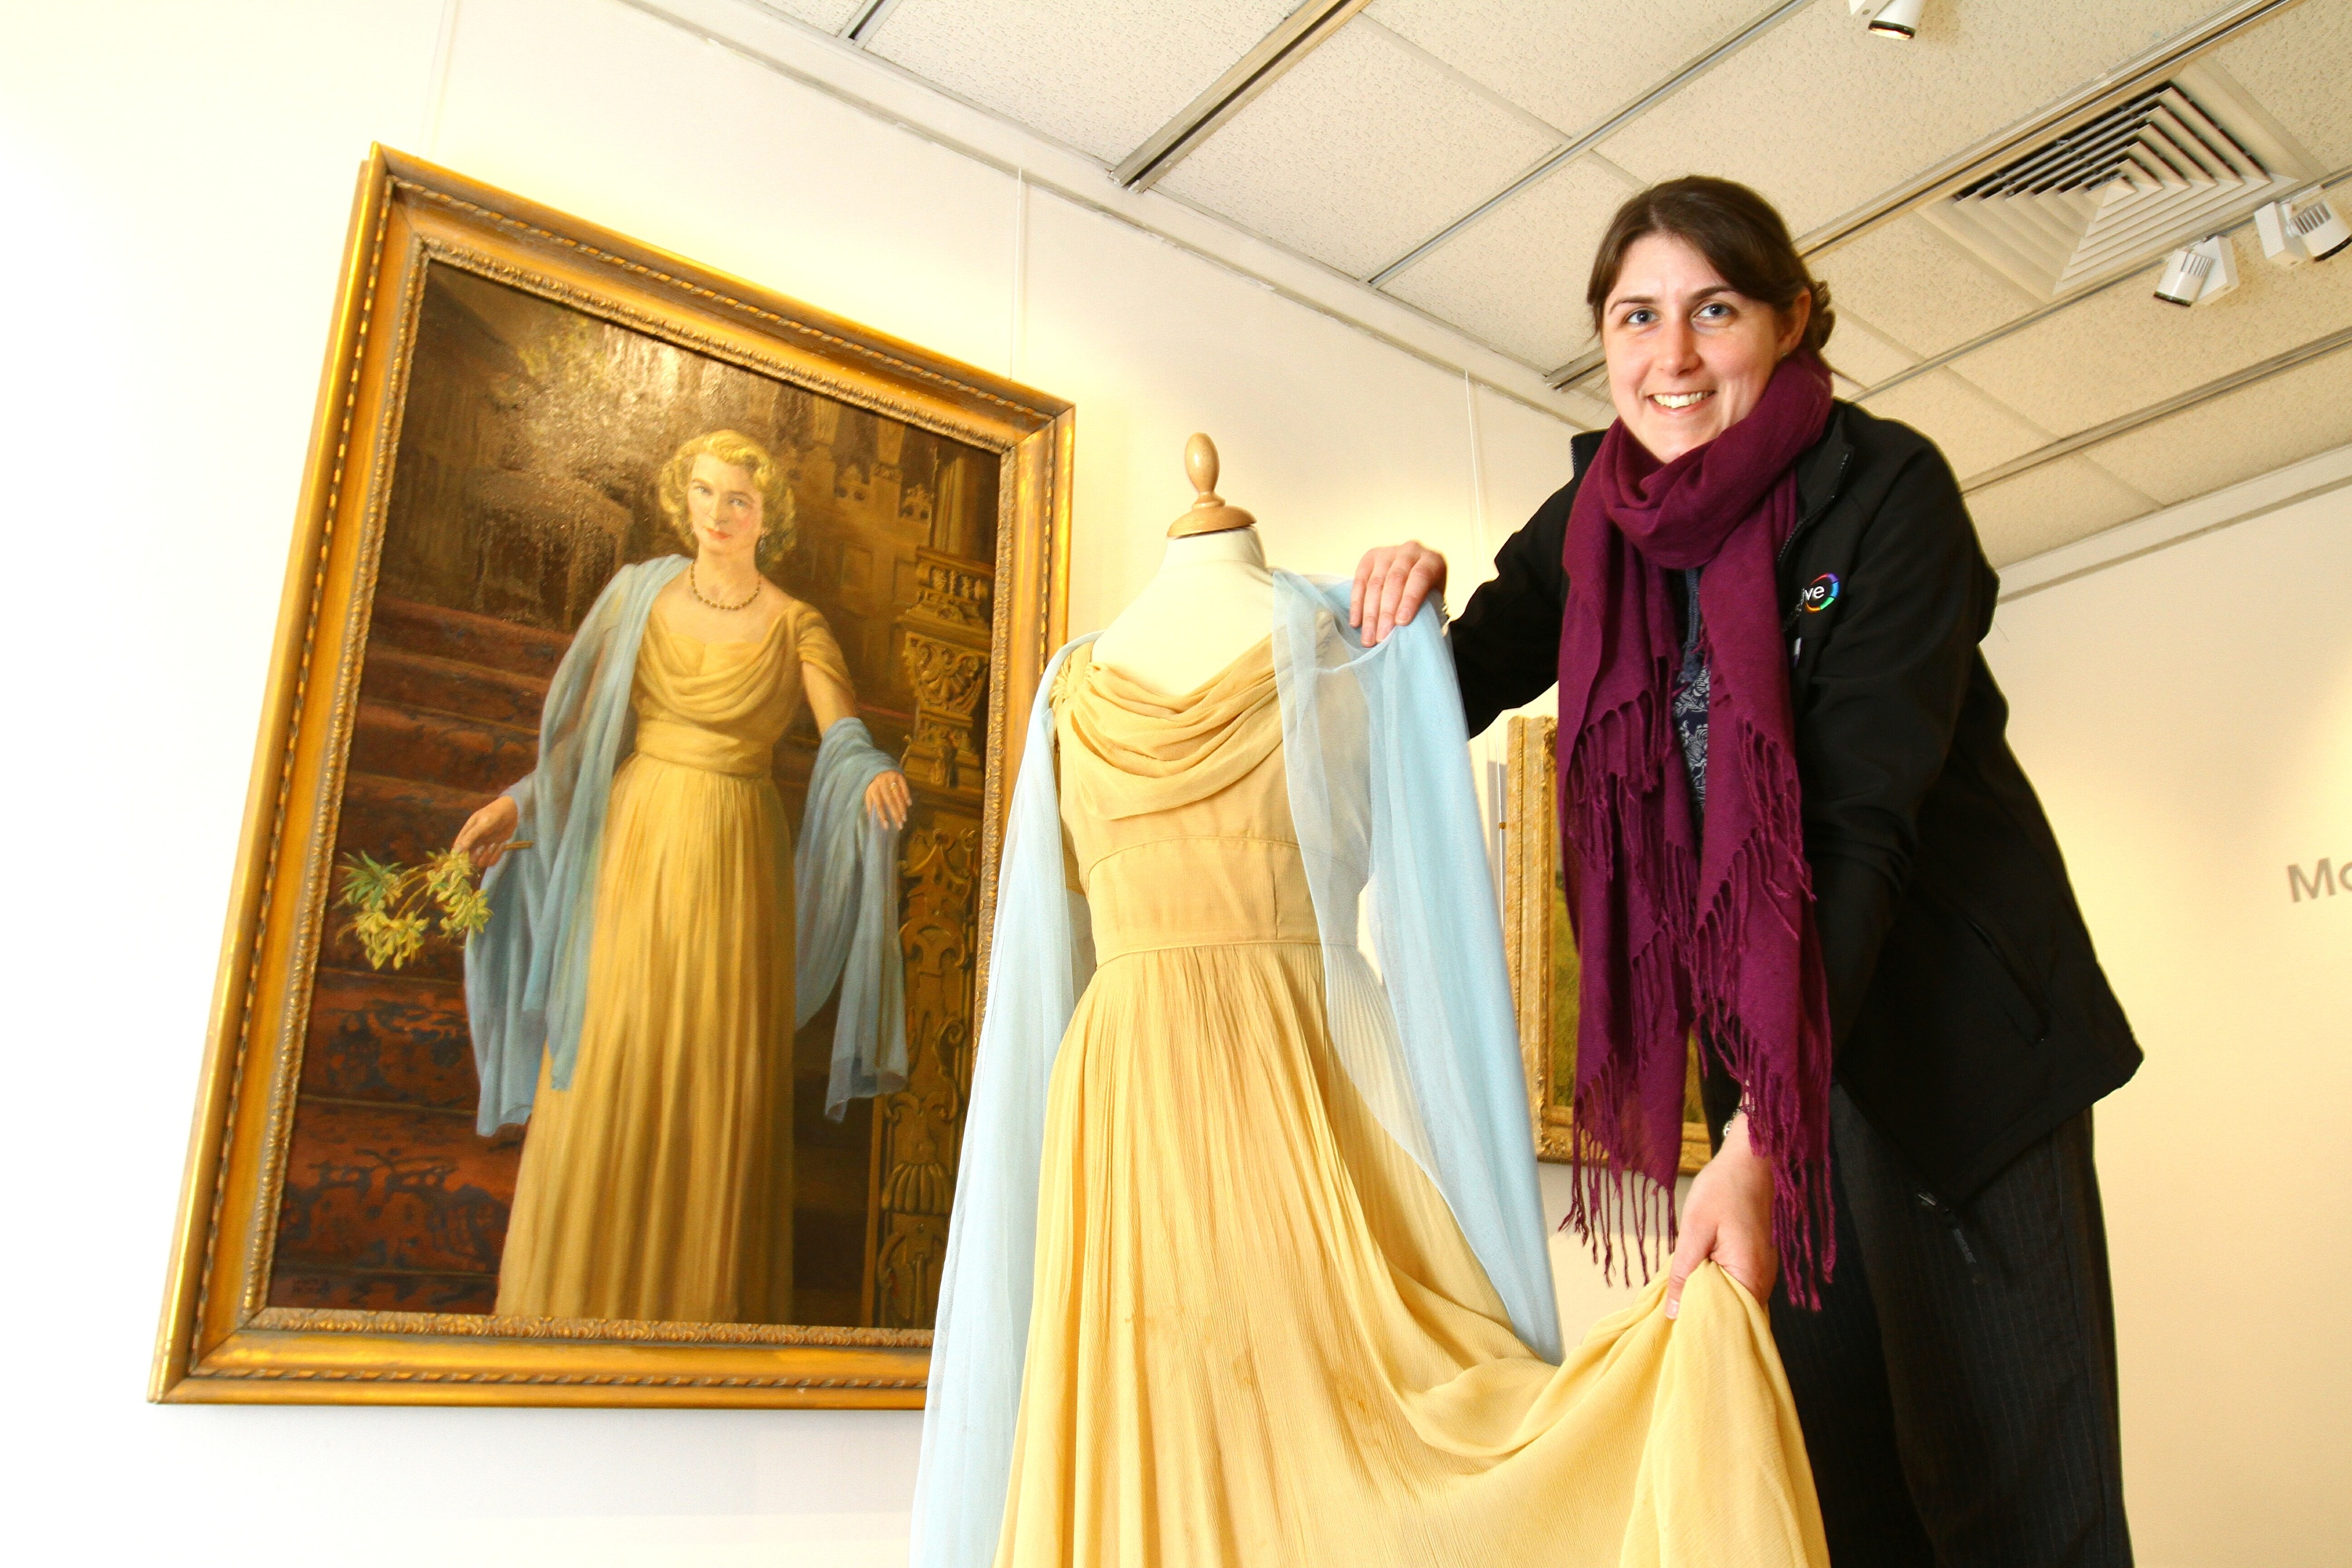 Visual arts officer Gill Ross with the portrait of Lady Sophie Lyell by artist James McIntosh Patrick, which is on show at the Meffan in Forfar, along with the dress worn in the painting.